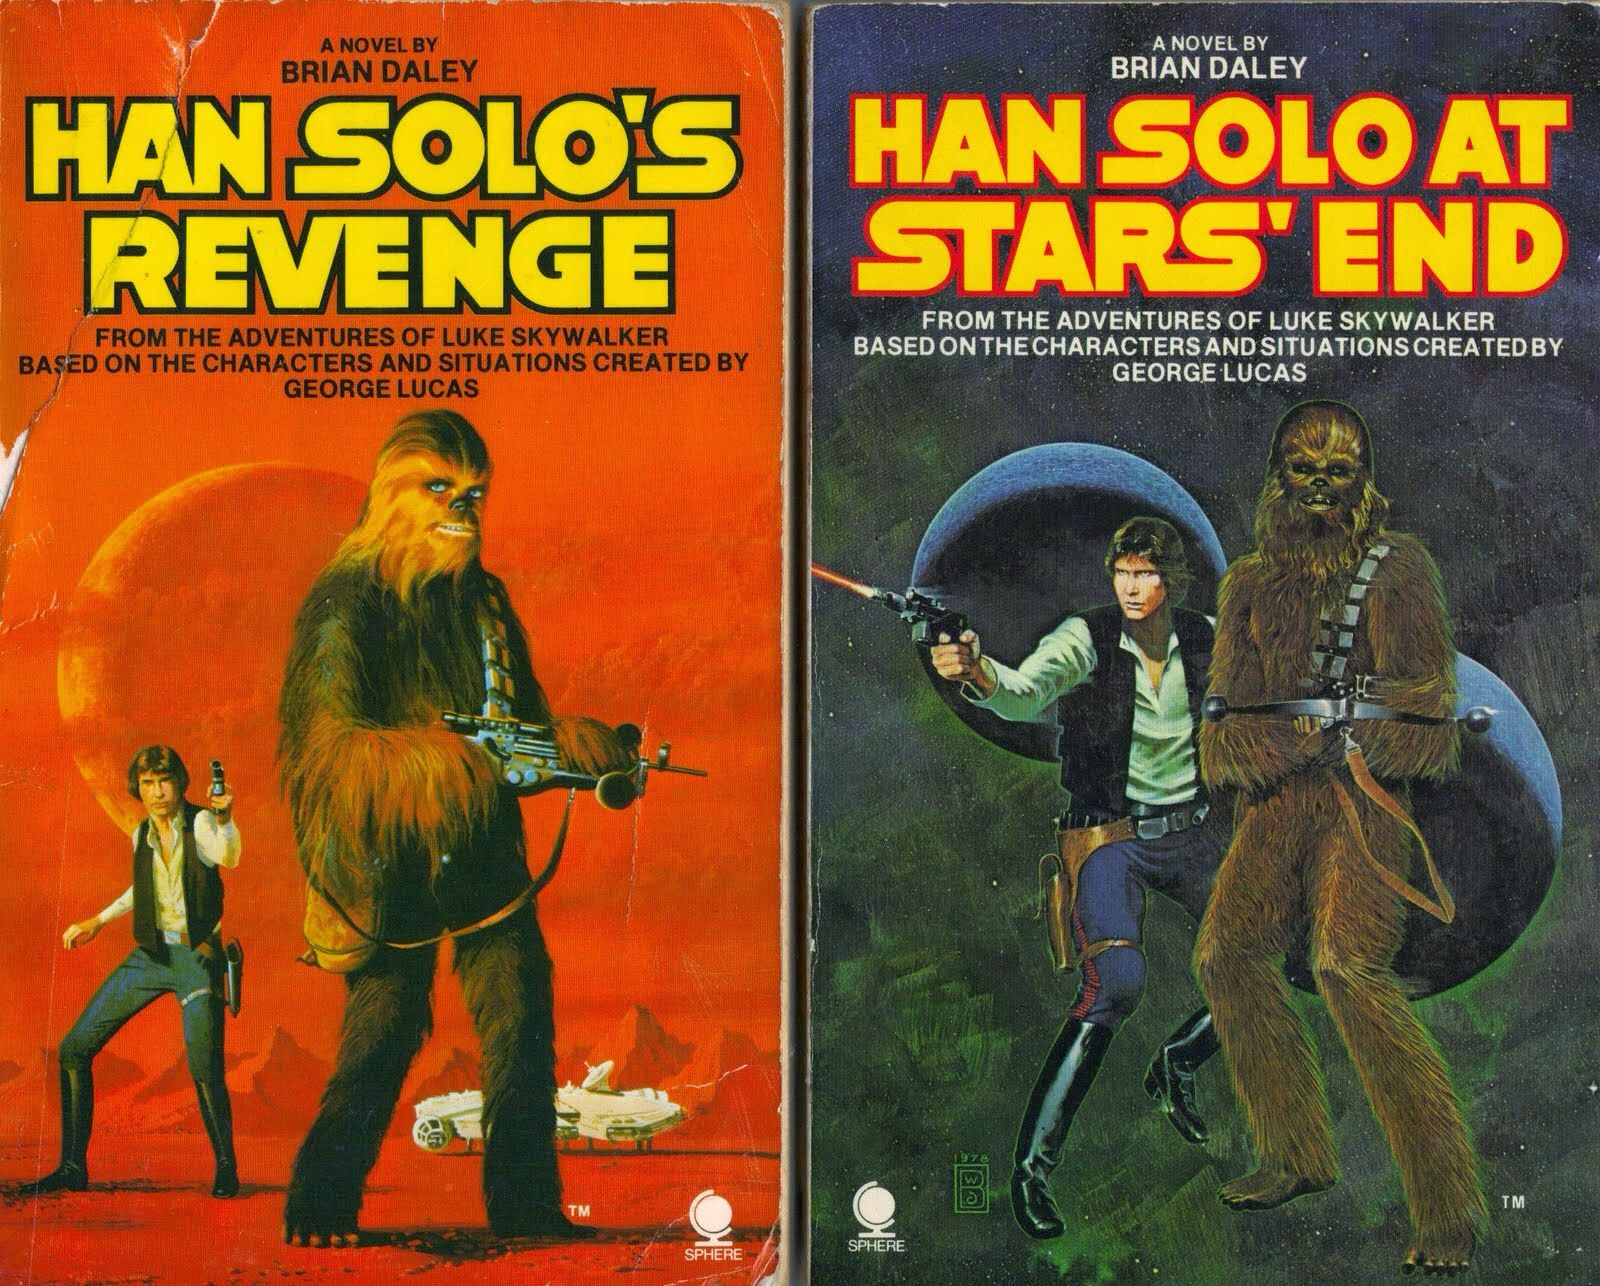 Vintage Star Wars novels - I read both of these as a kid.